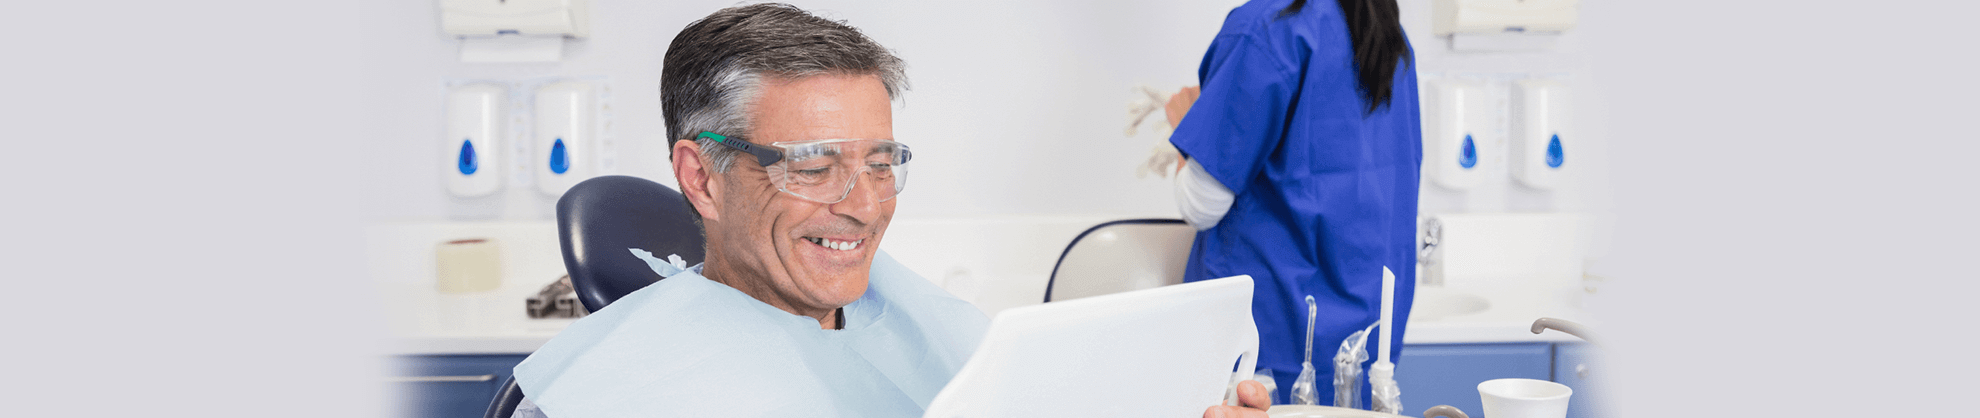 services-dental-implants